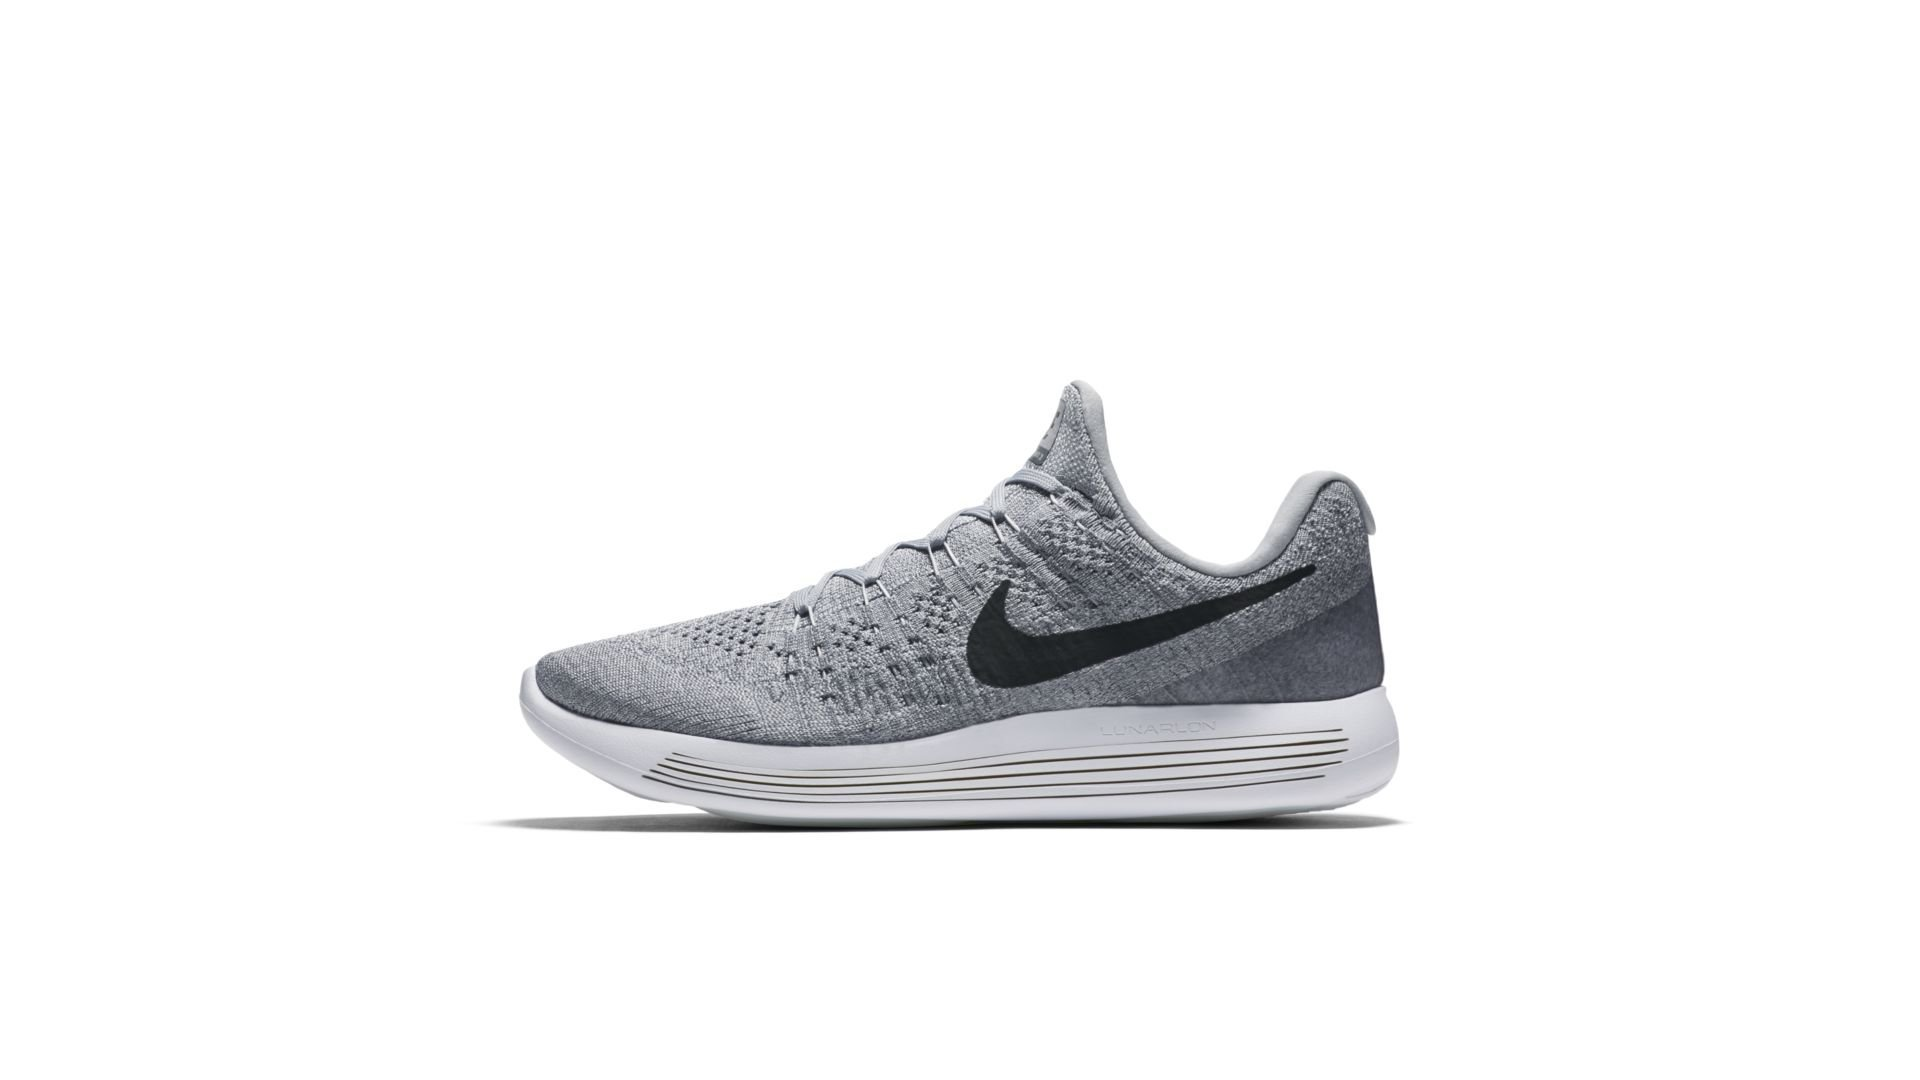 Nike Lunarepic Low Flyknit 2 Wolf Grey (863779-002)